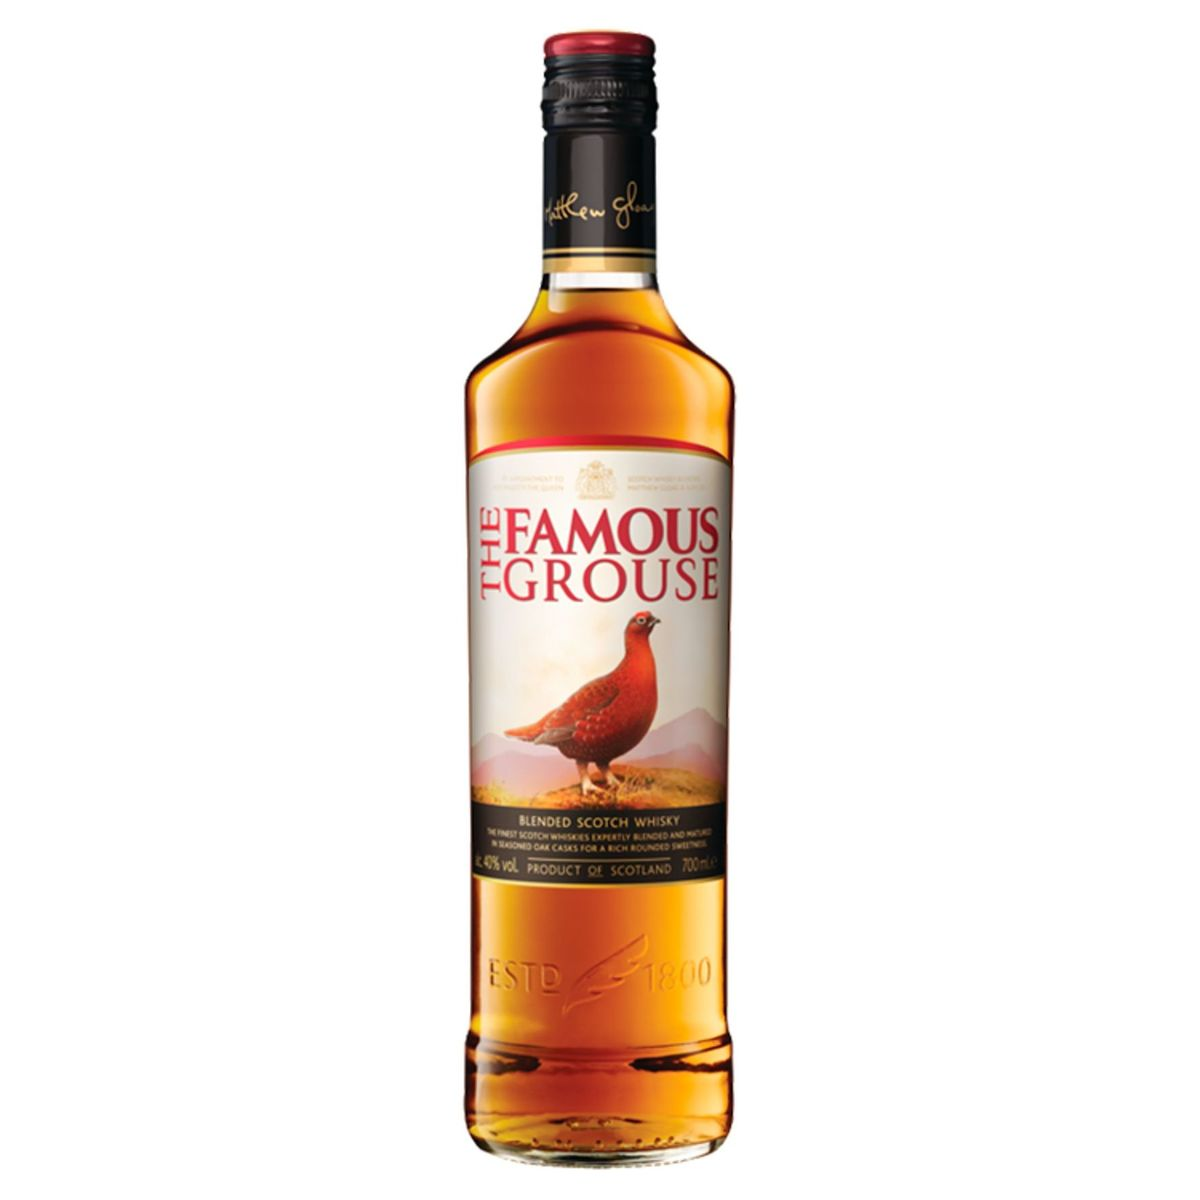 The Famous Grouse Blended Scotch Whisky 700 ml